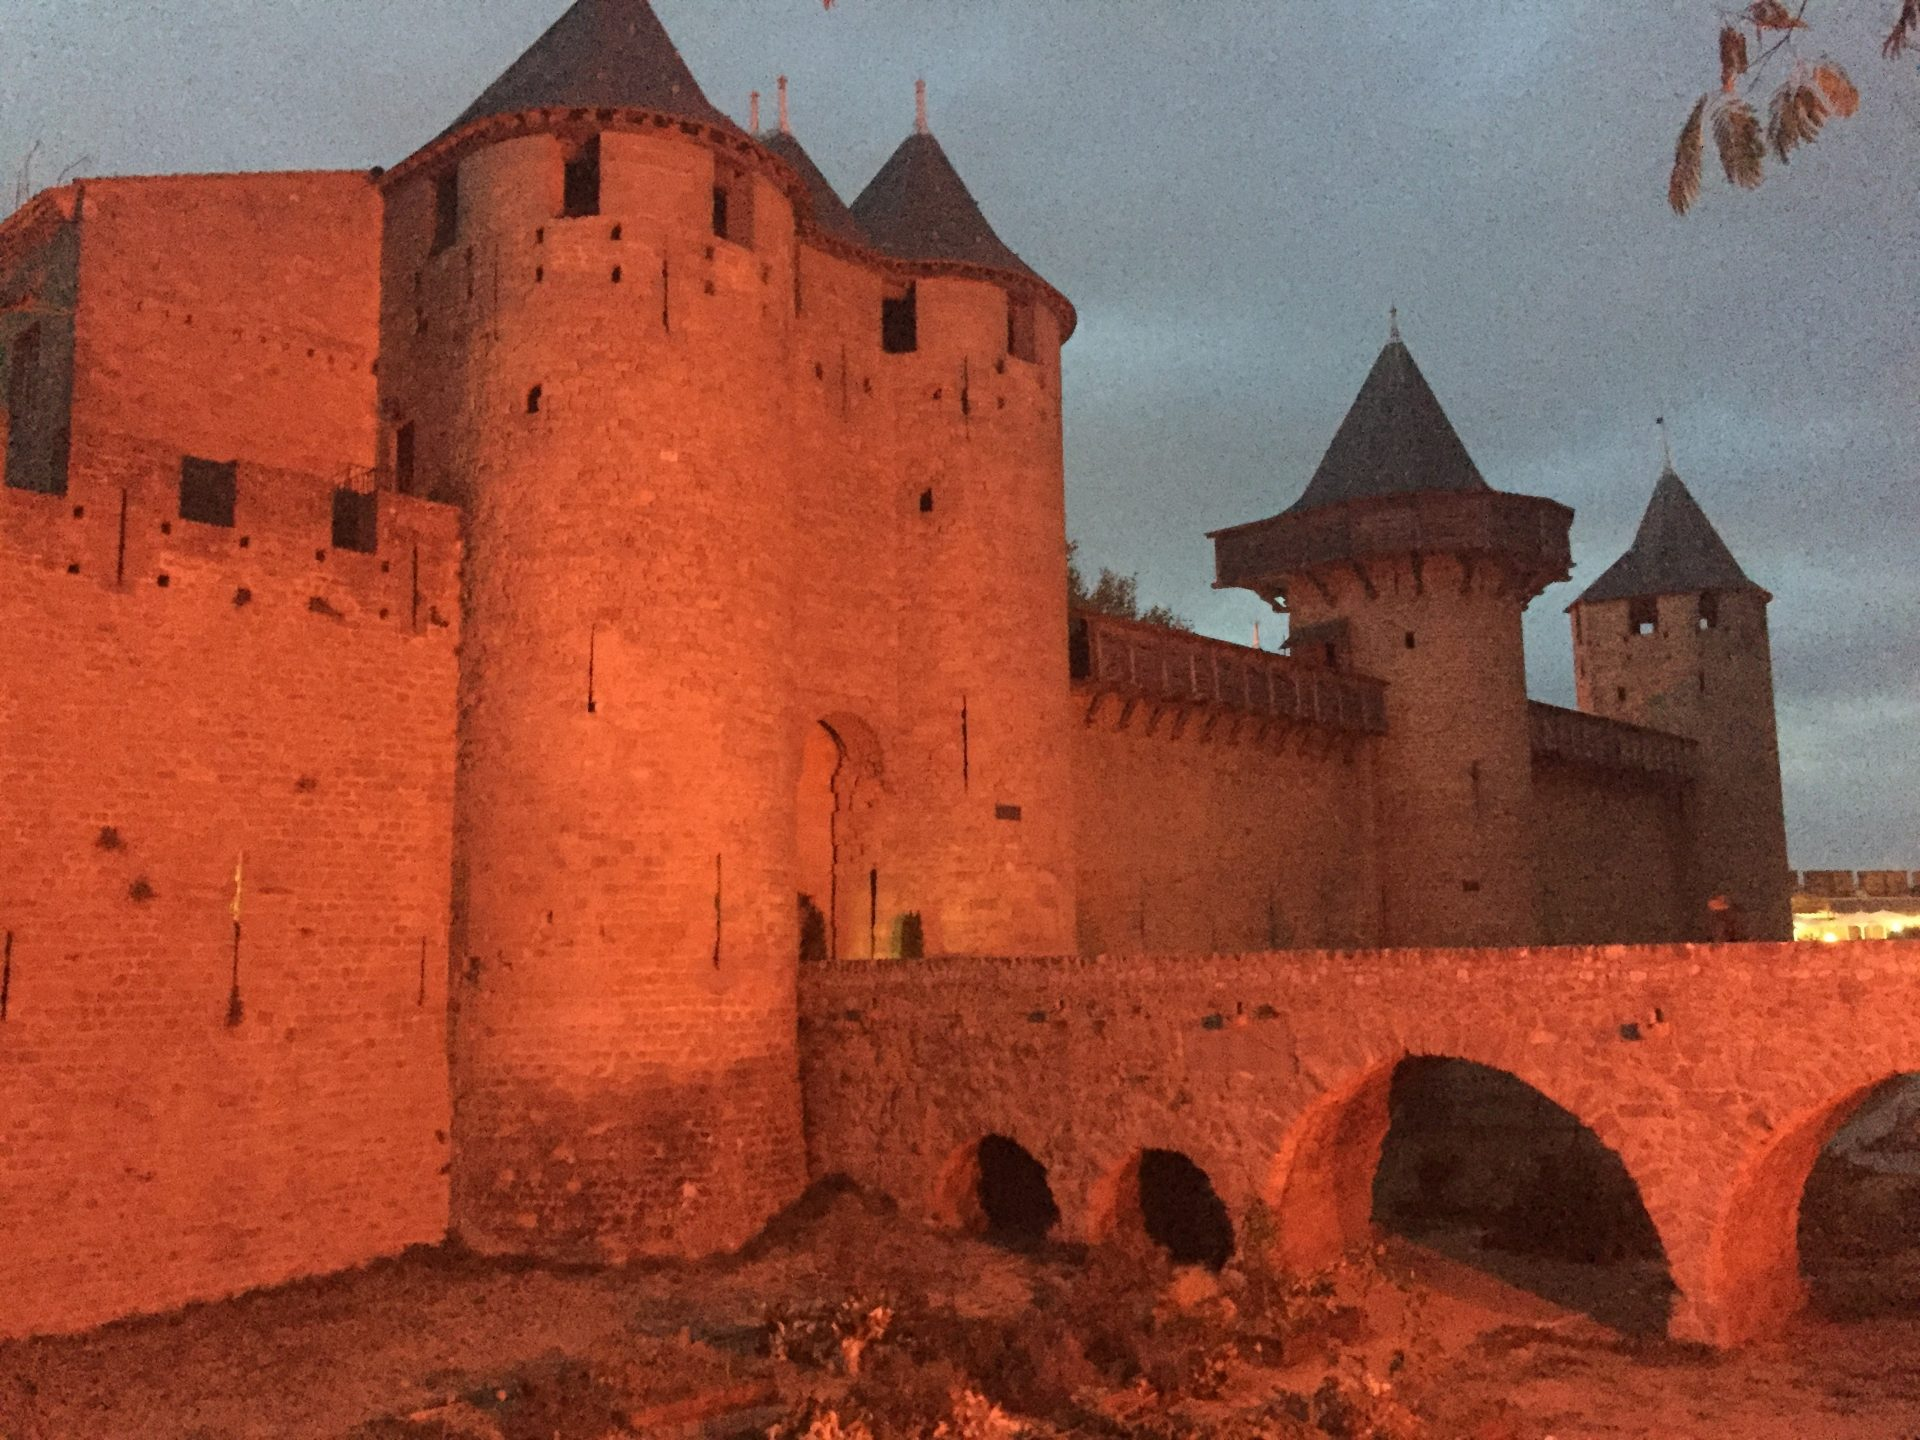 """Restored in 1853 by the architect Eugène Viollet-le-Duc, Château Comtal has a strong claim to be called a """"Cathar Castle"""". When the Catholic Crusader army arrived in 1209 they first attacked Raymond-Roger Trencavel's castrum at Bèziers and then moved on to his main stronghold at Carcassonne."""